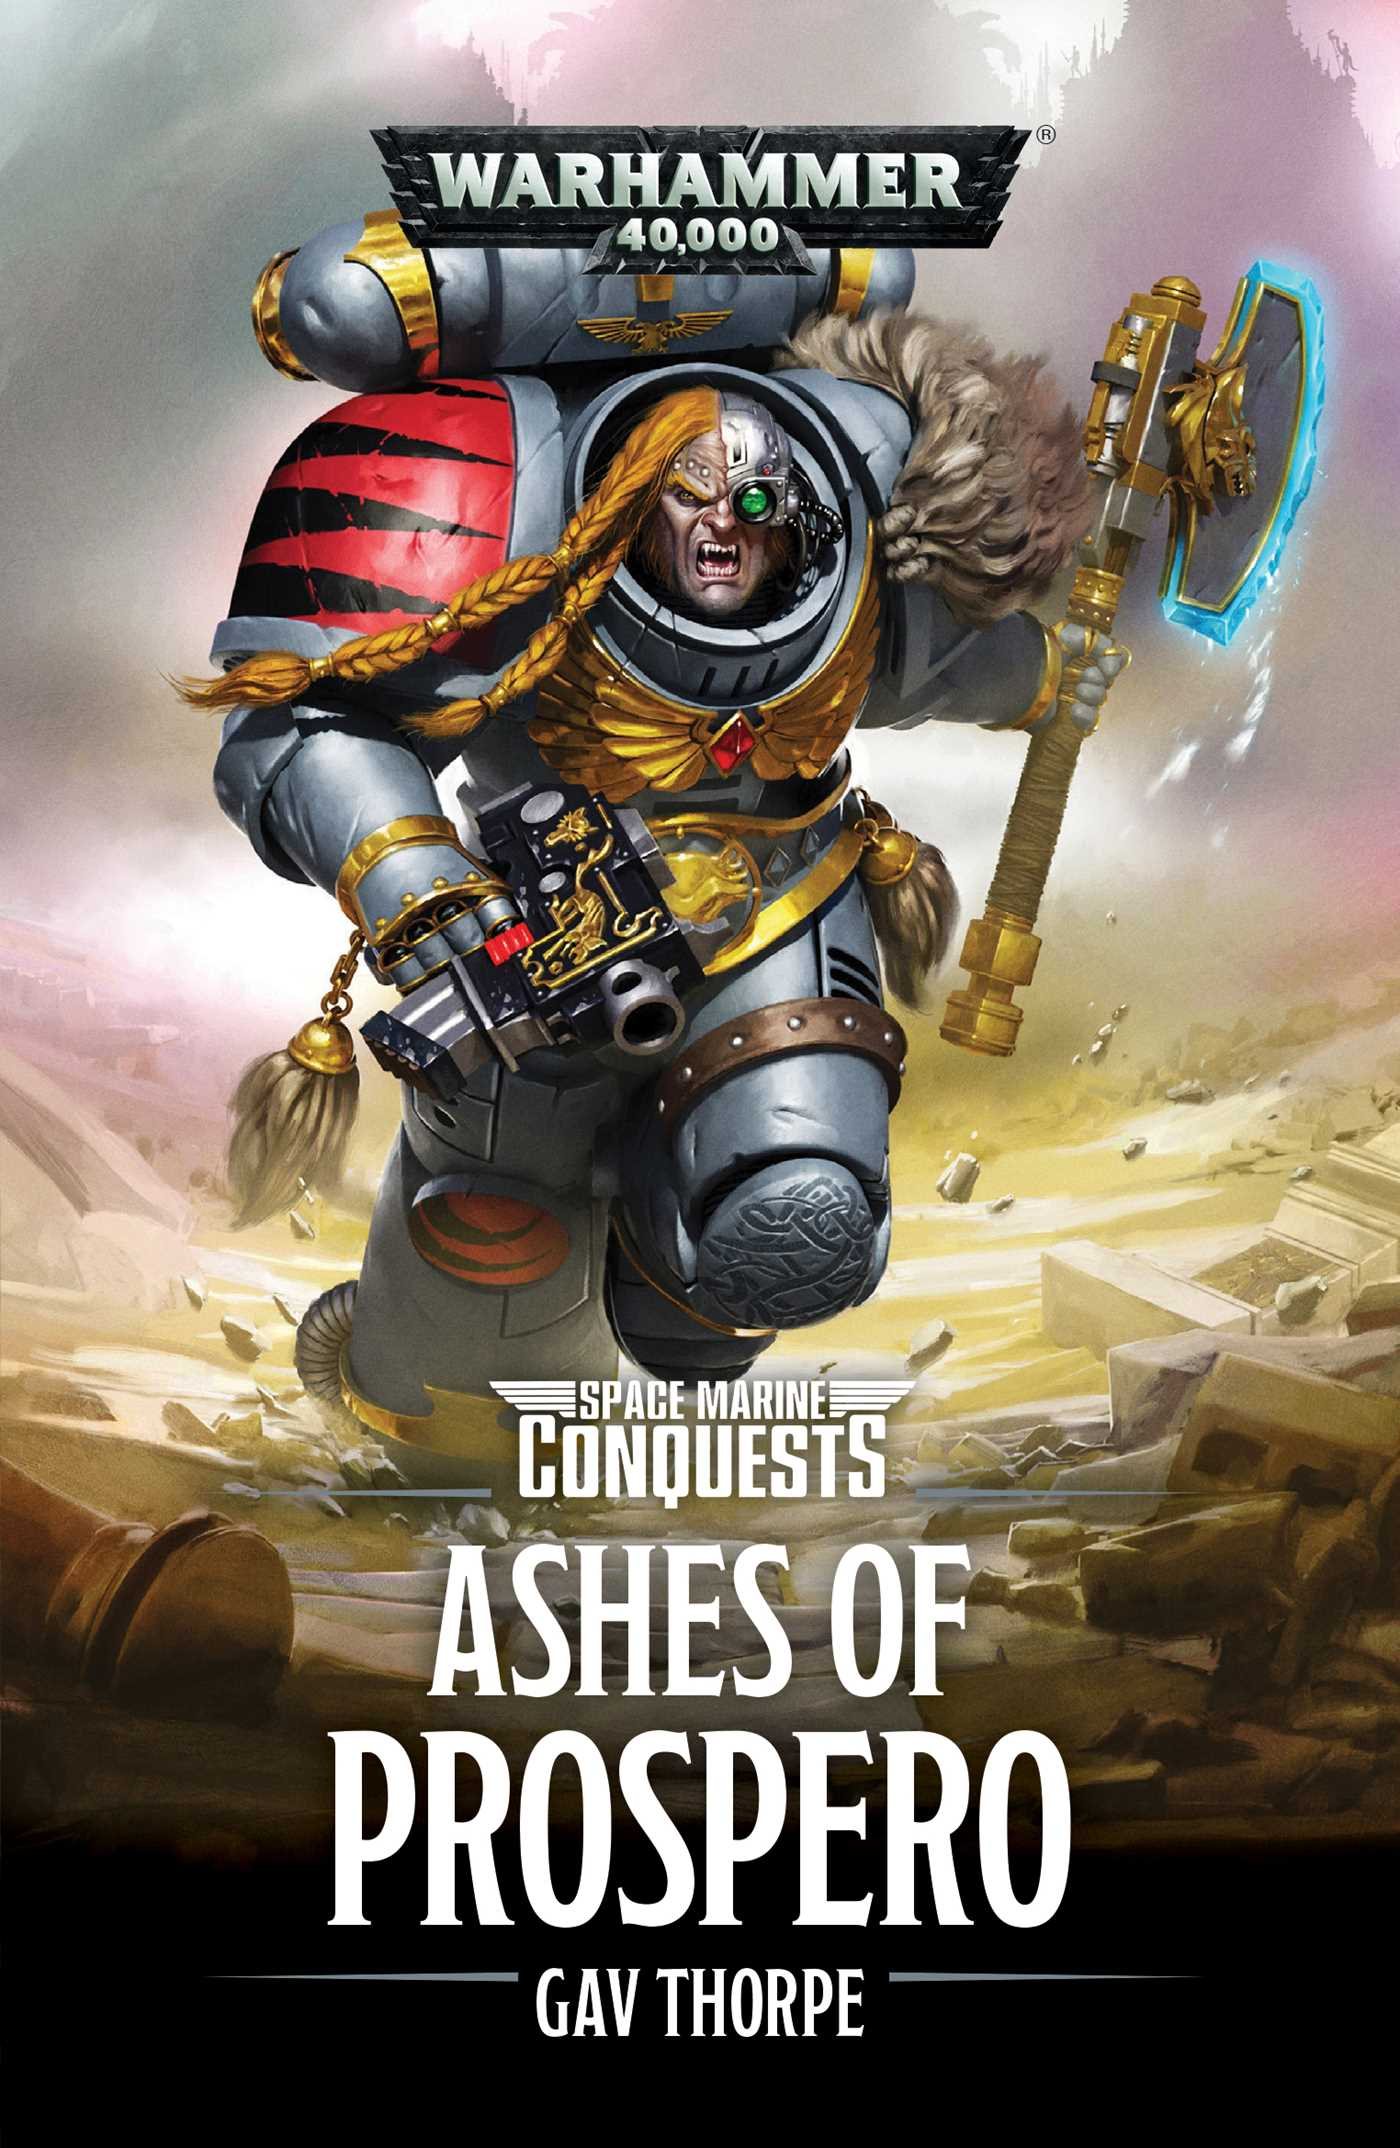 The ashes of prospero 9781784966454 hr